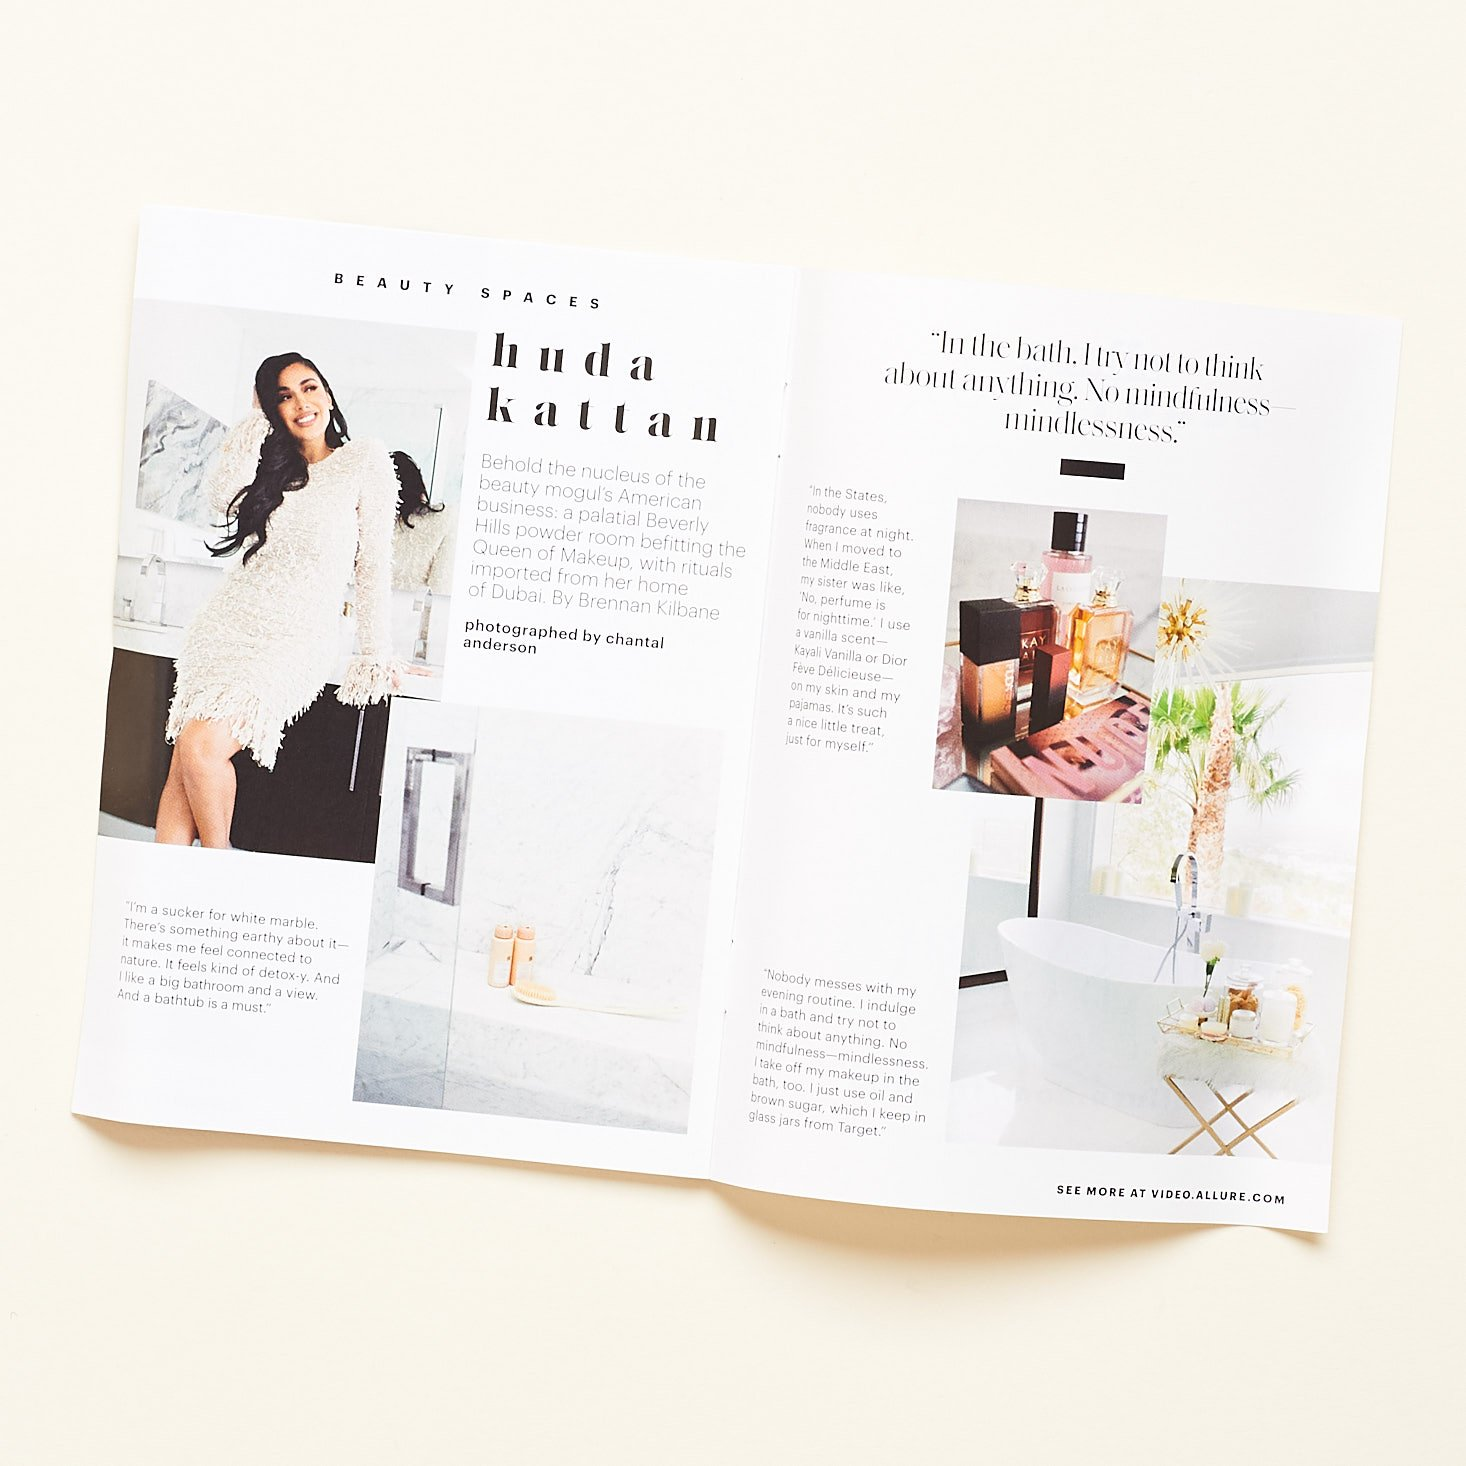 allure booklet pages featuring huda kattan